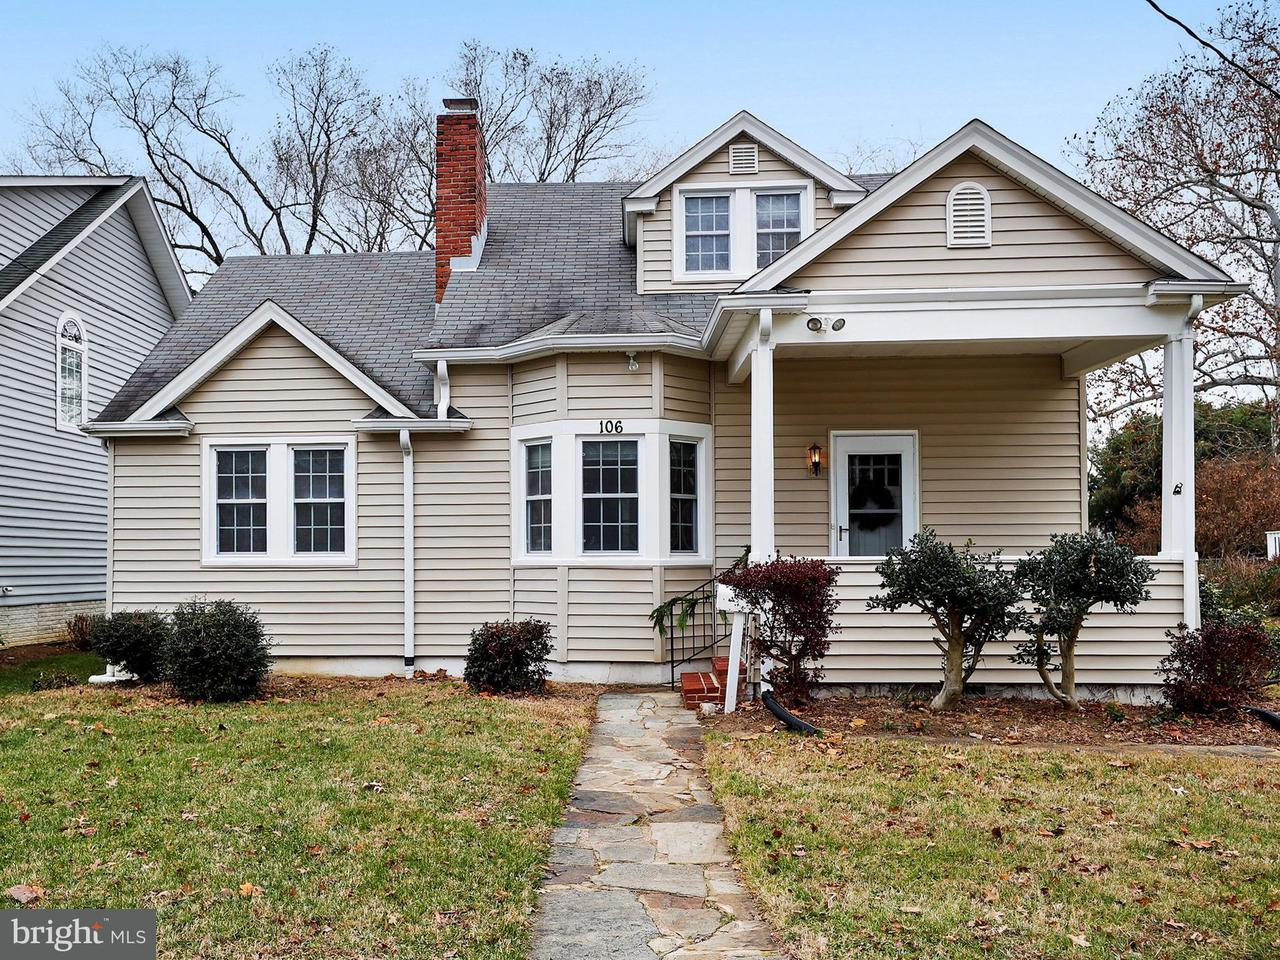 Single Family Home for Sale at 106 SOUTH CHERRY GROVE AVENUE 106 SOUTH CHERRY GROVE AVENUE Annapolis, Maryland 21401 United States